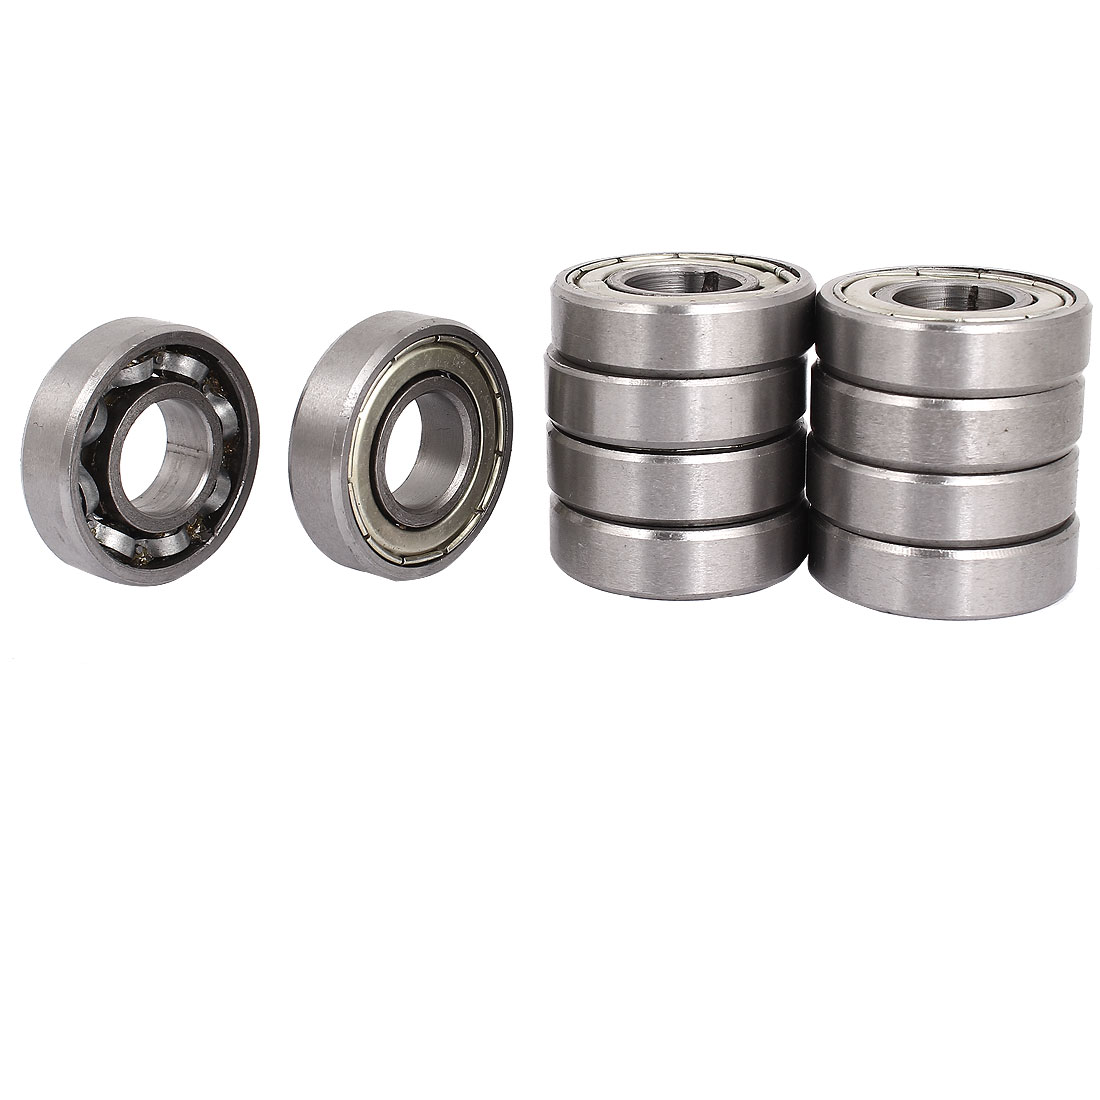 10pcs 17mm/40mm/12mm 17x40x12mm One Way Clutch Backstop Ball Bearing